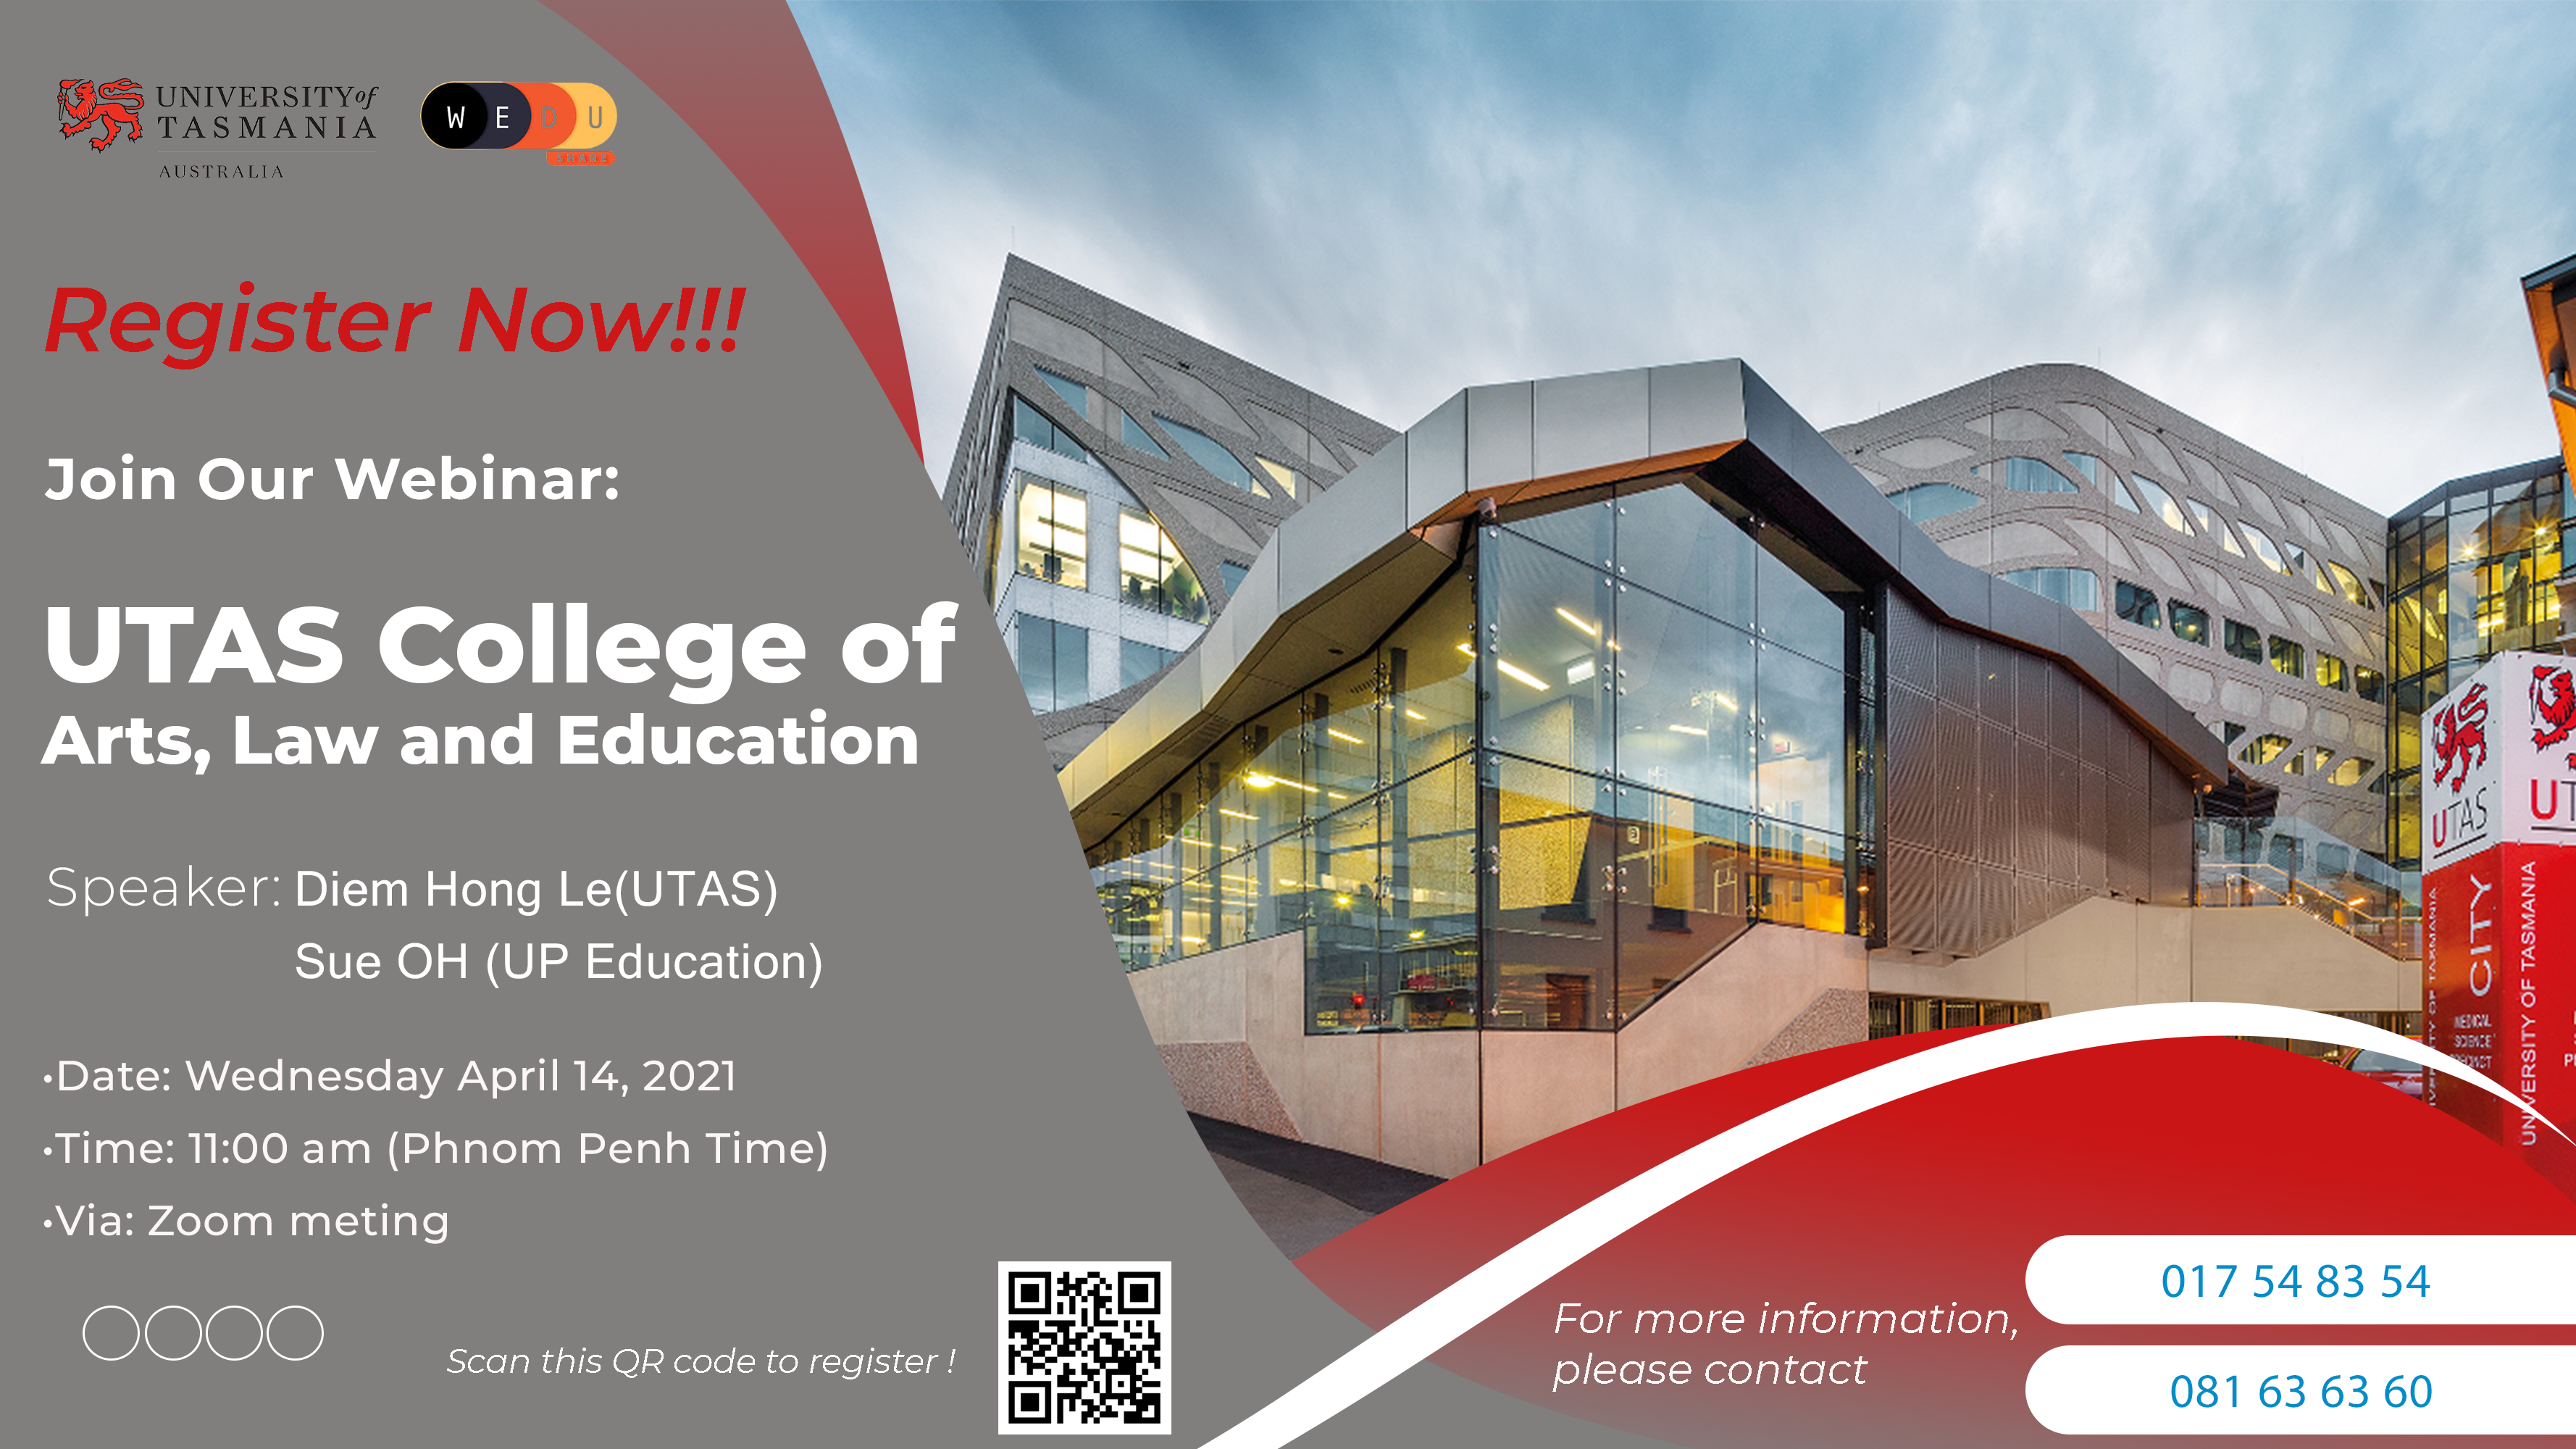 UTAS College of Arts, Law and Education